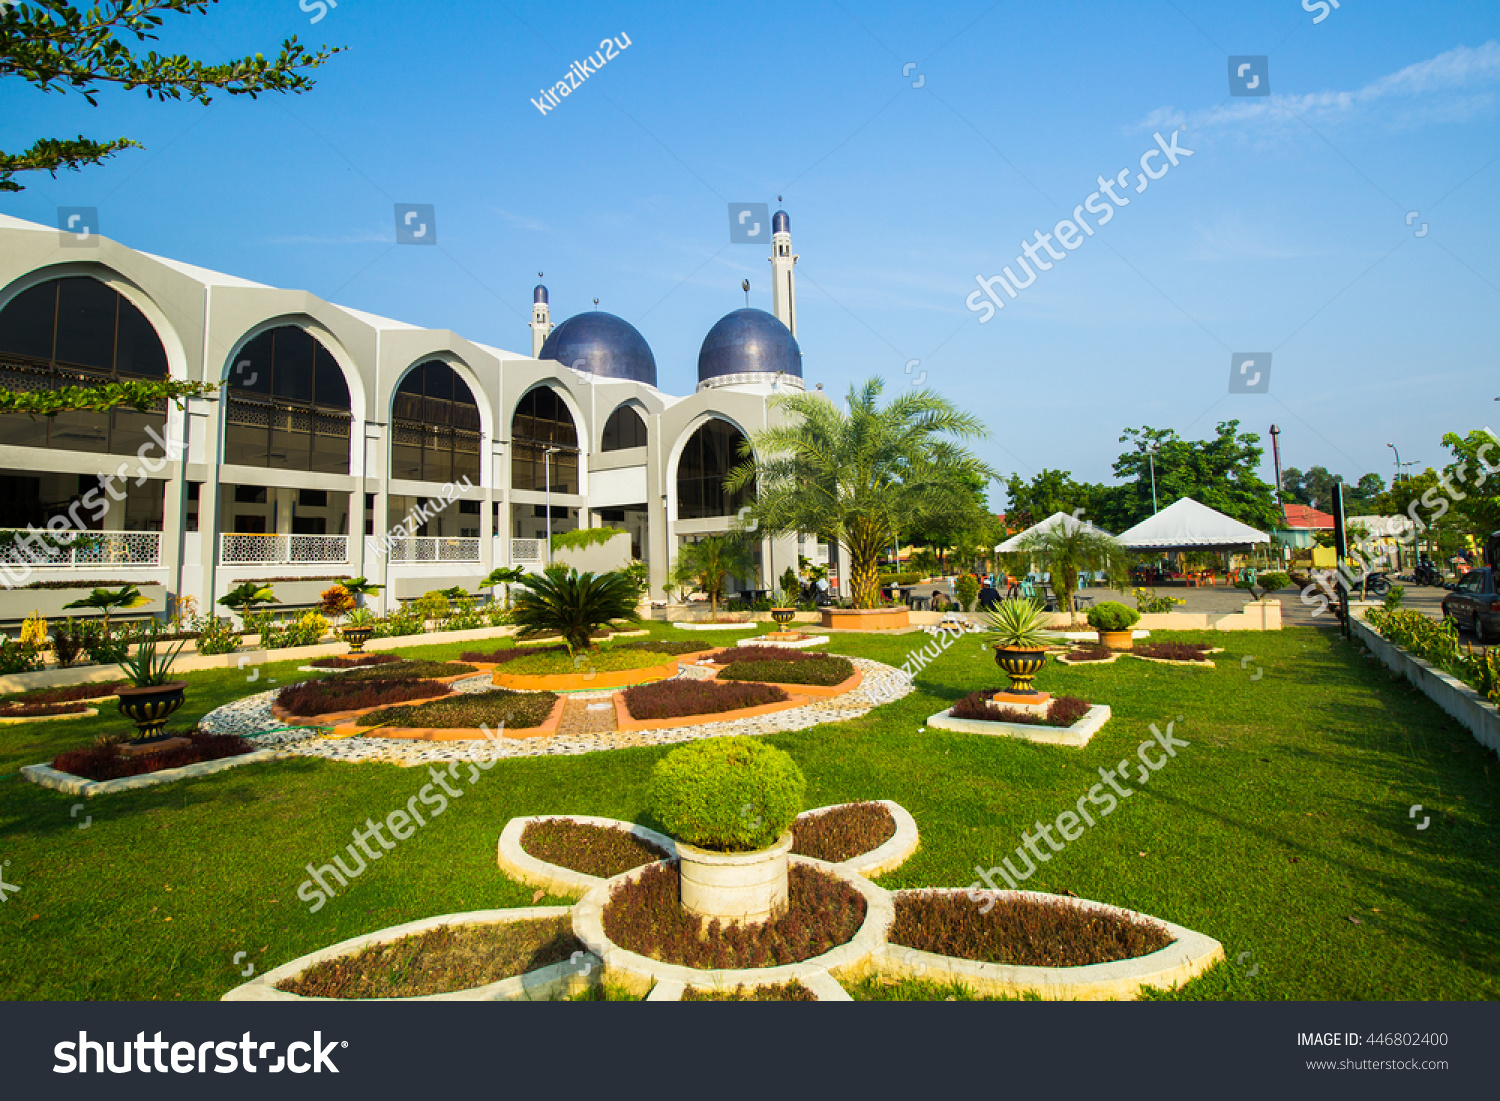 View Sultan Ismael Petra Mosque Kubang Stock Photo 446802400 ...